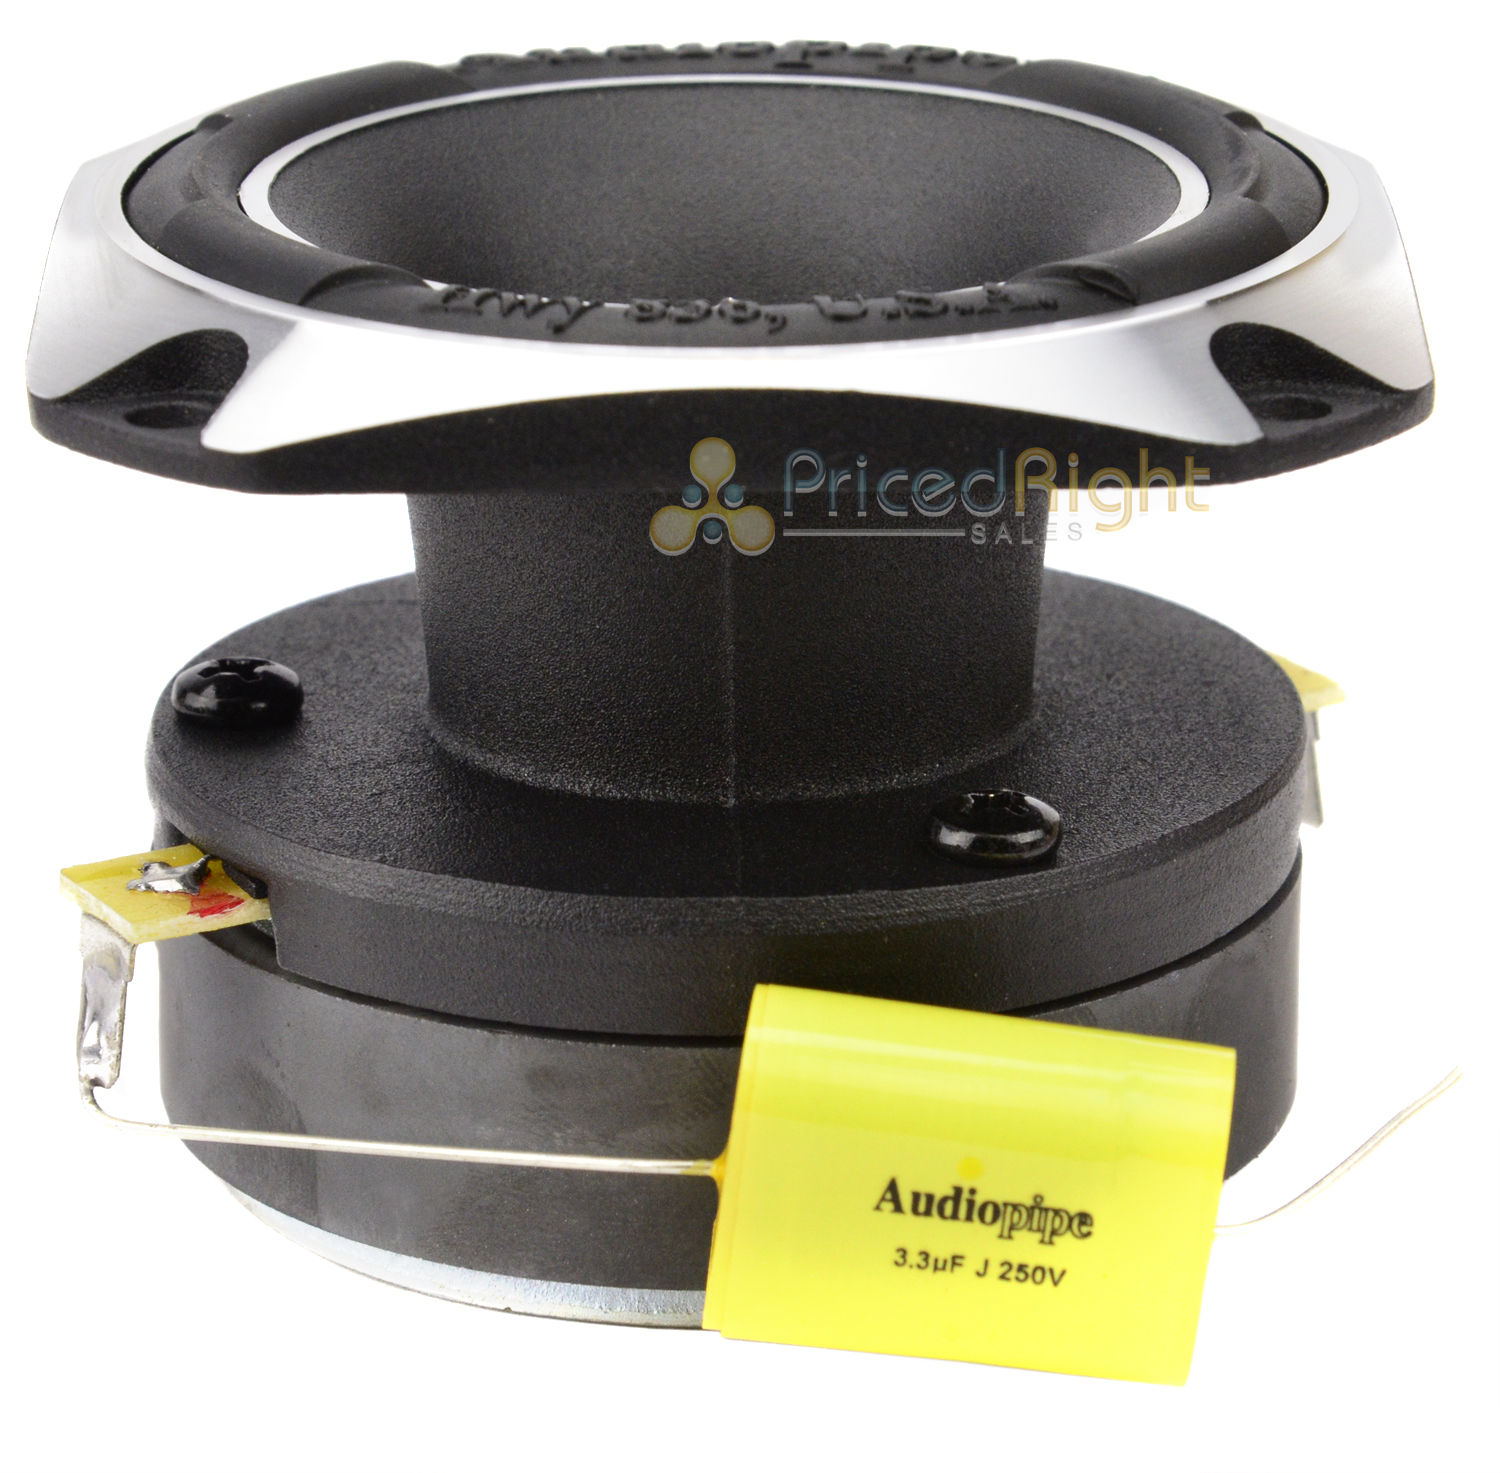 Audiopipe Atr 3231 3 Heavy Duty Titanium Super Tweeter 350 Watts Amplifier Power Wiring Install Kit Sub Subwoofer Bullz Audio Epak8r Each Set Of 2